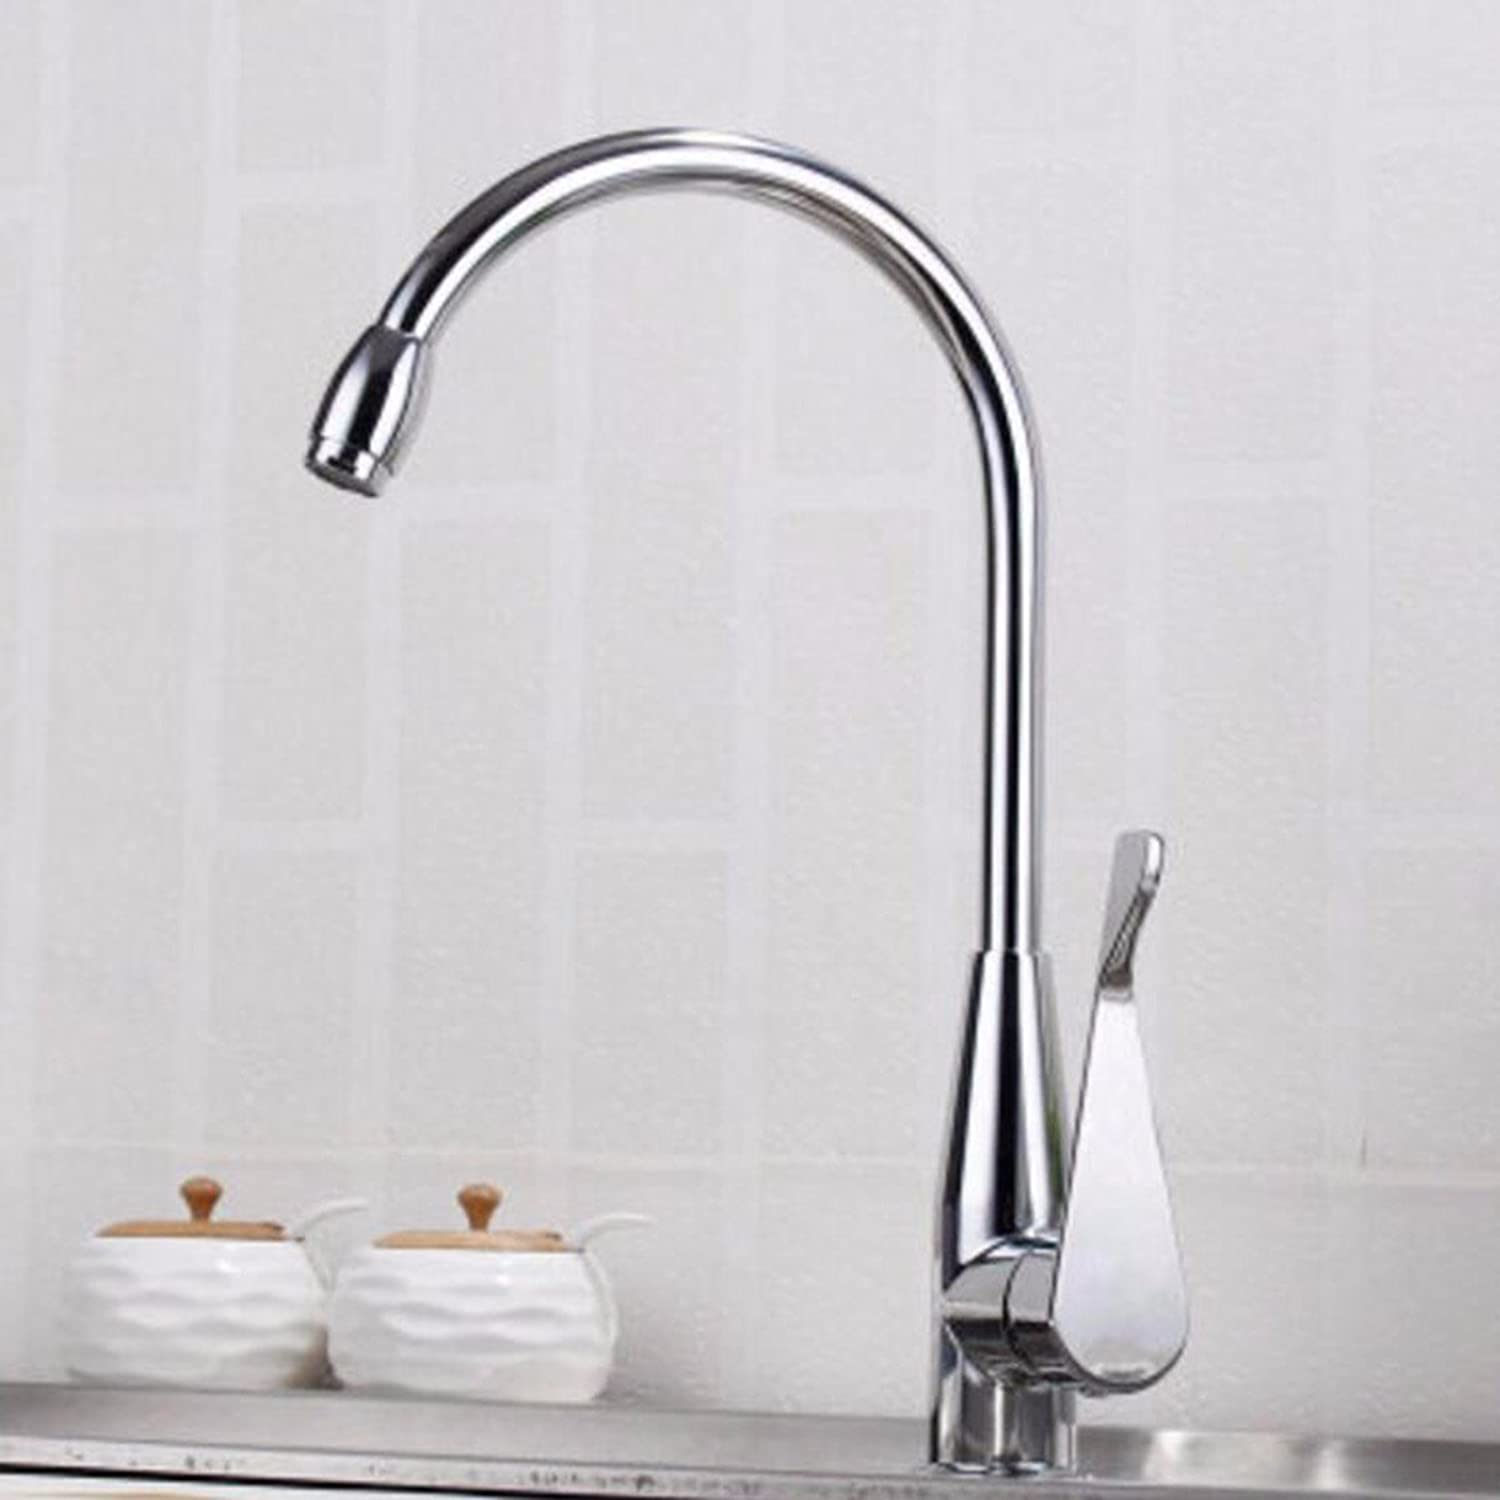 Kitchen faucet Kitchen Faucets, Hot And Cold, All Copper Wash Vegetable Pots, Sink, Faucet, Laundry Pool, Revolving Sink,D1